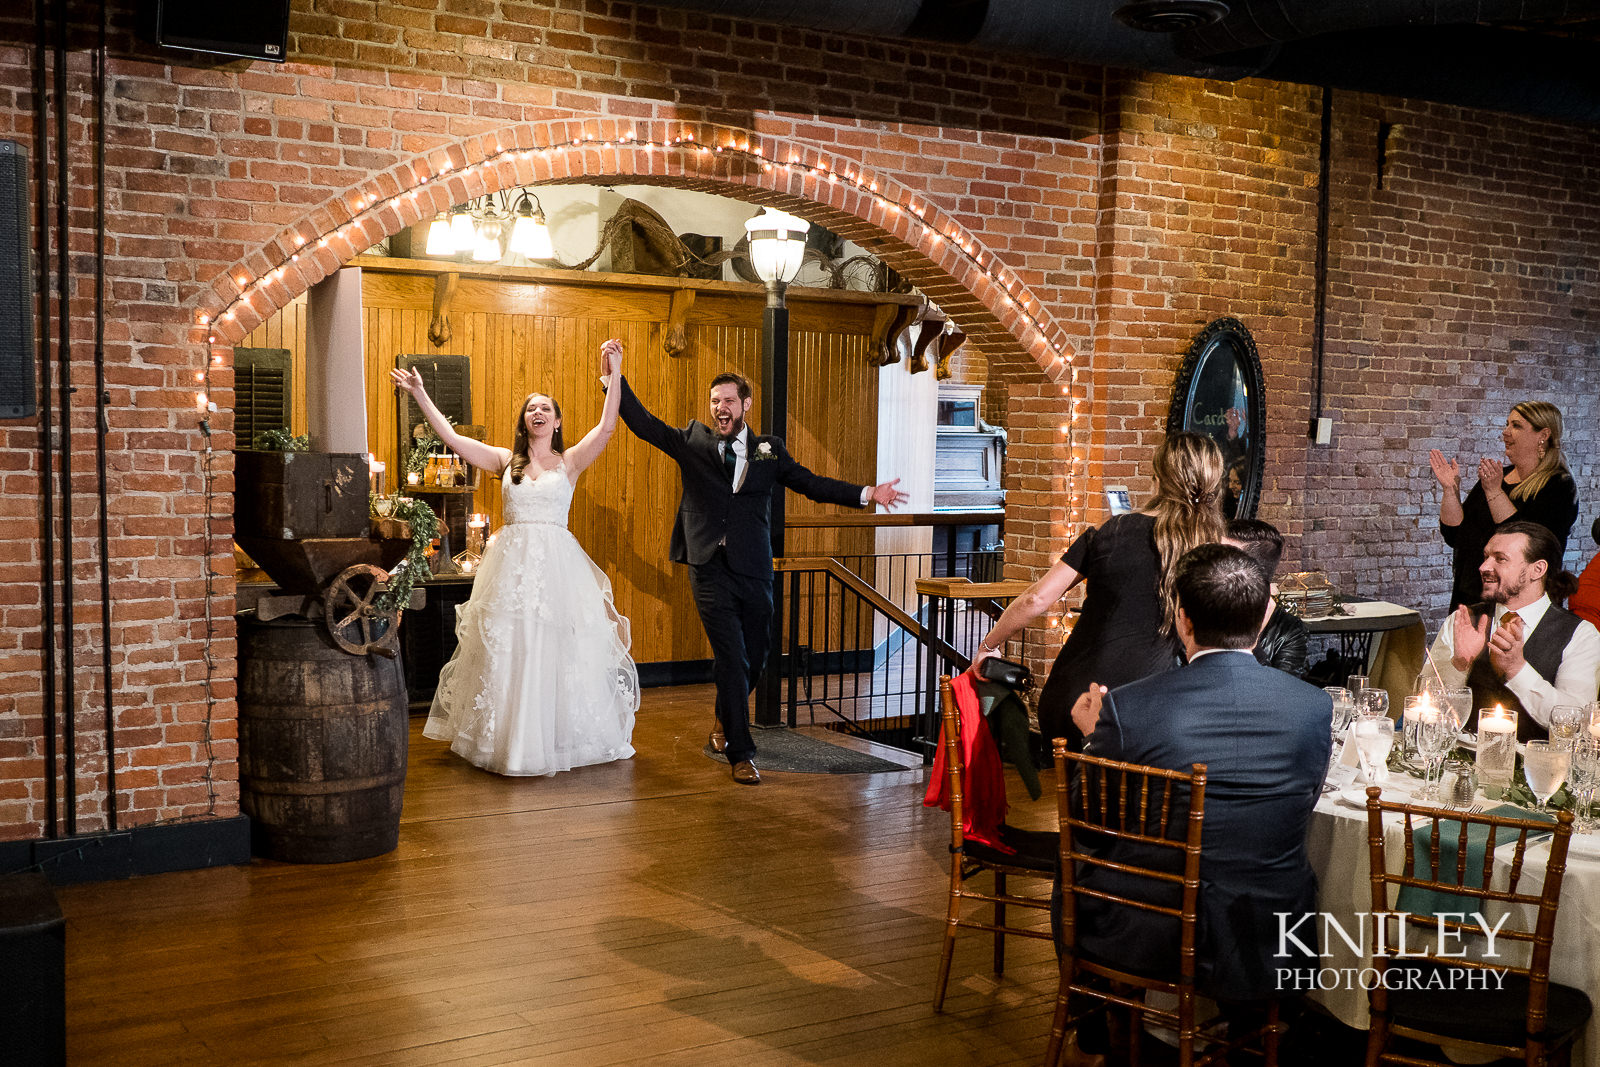 40-Pearl-St-Grill-Wedding-Reception-Buffalo-NY-Kniley-Photography.jpg